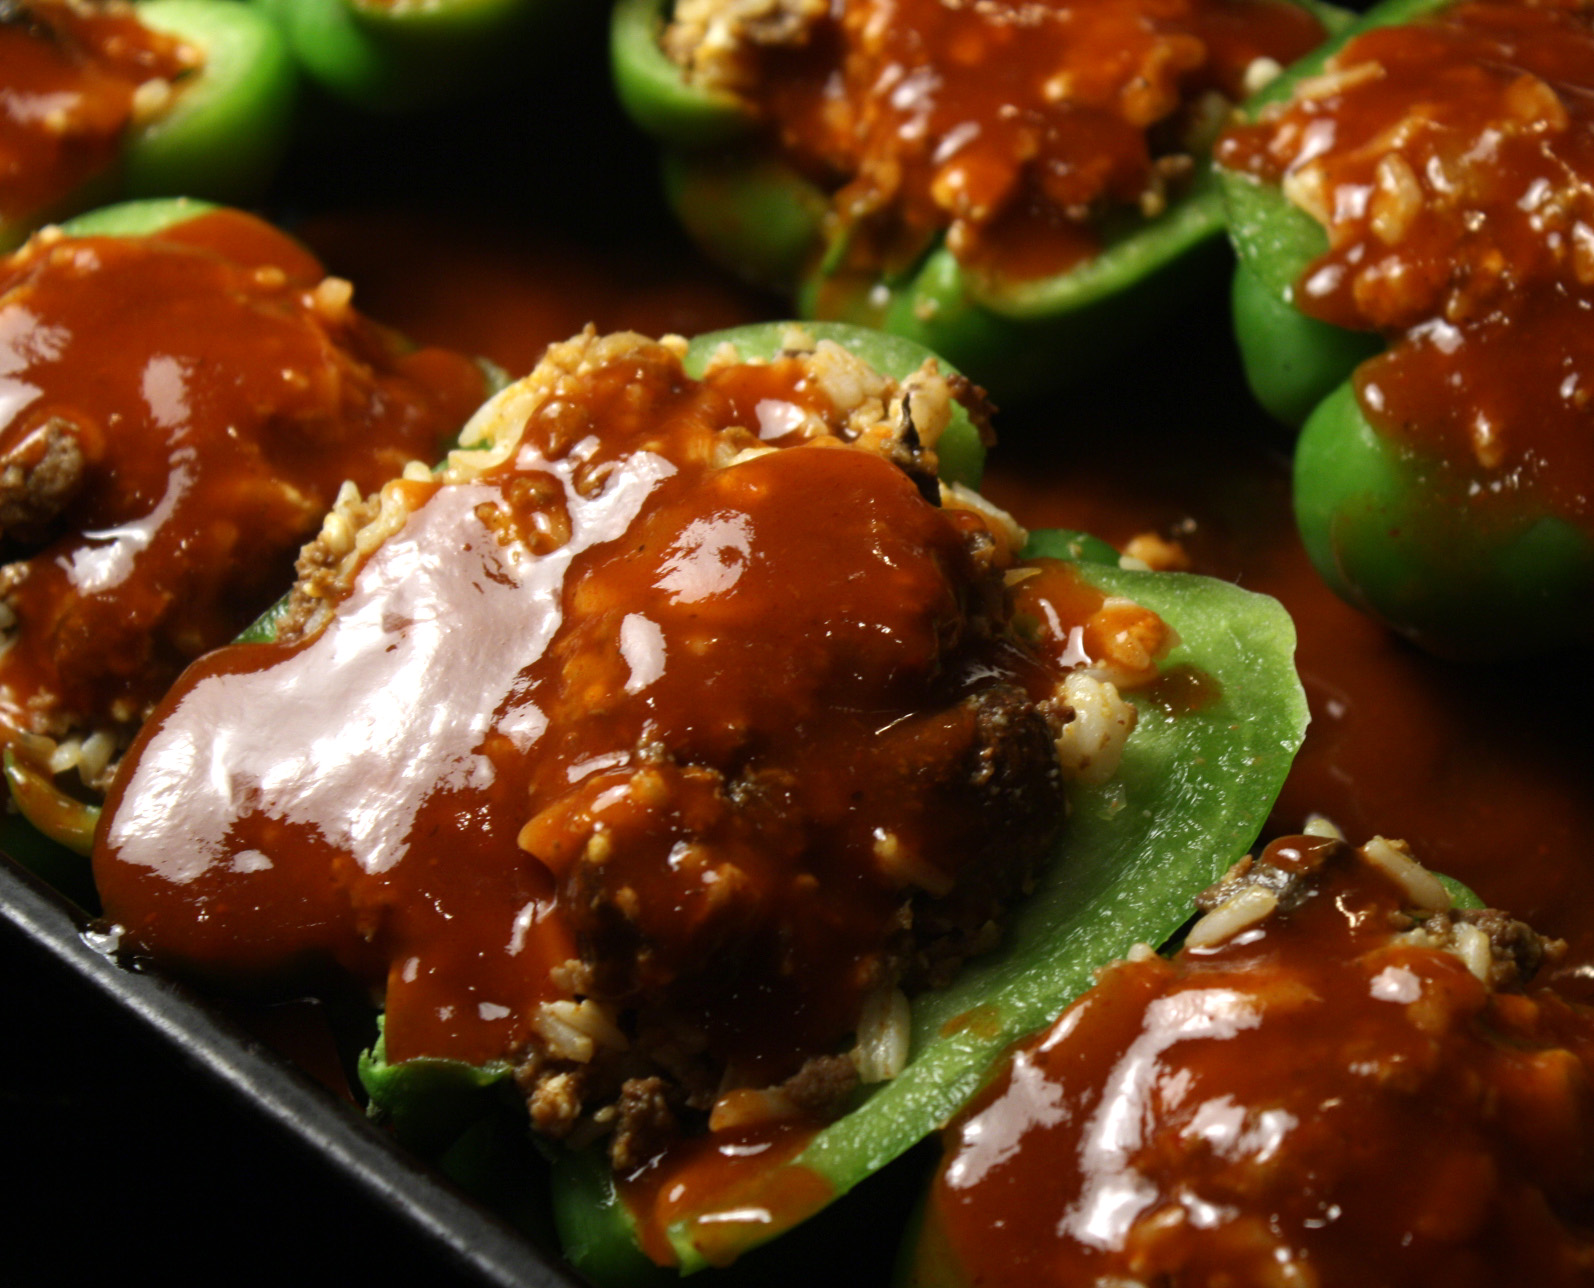 The 99 Cent Chef: Stuffed Bell Peppers - Mexican Style